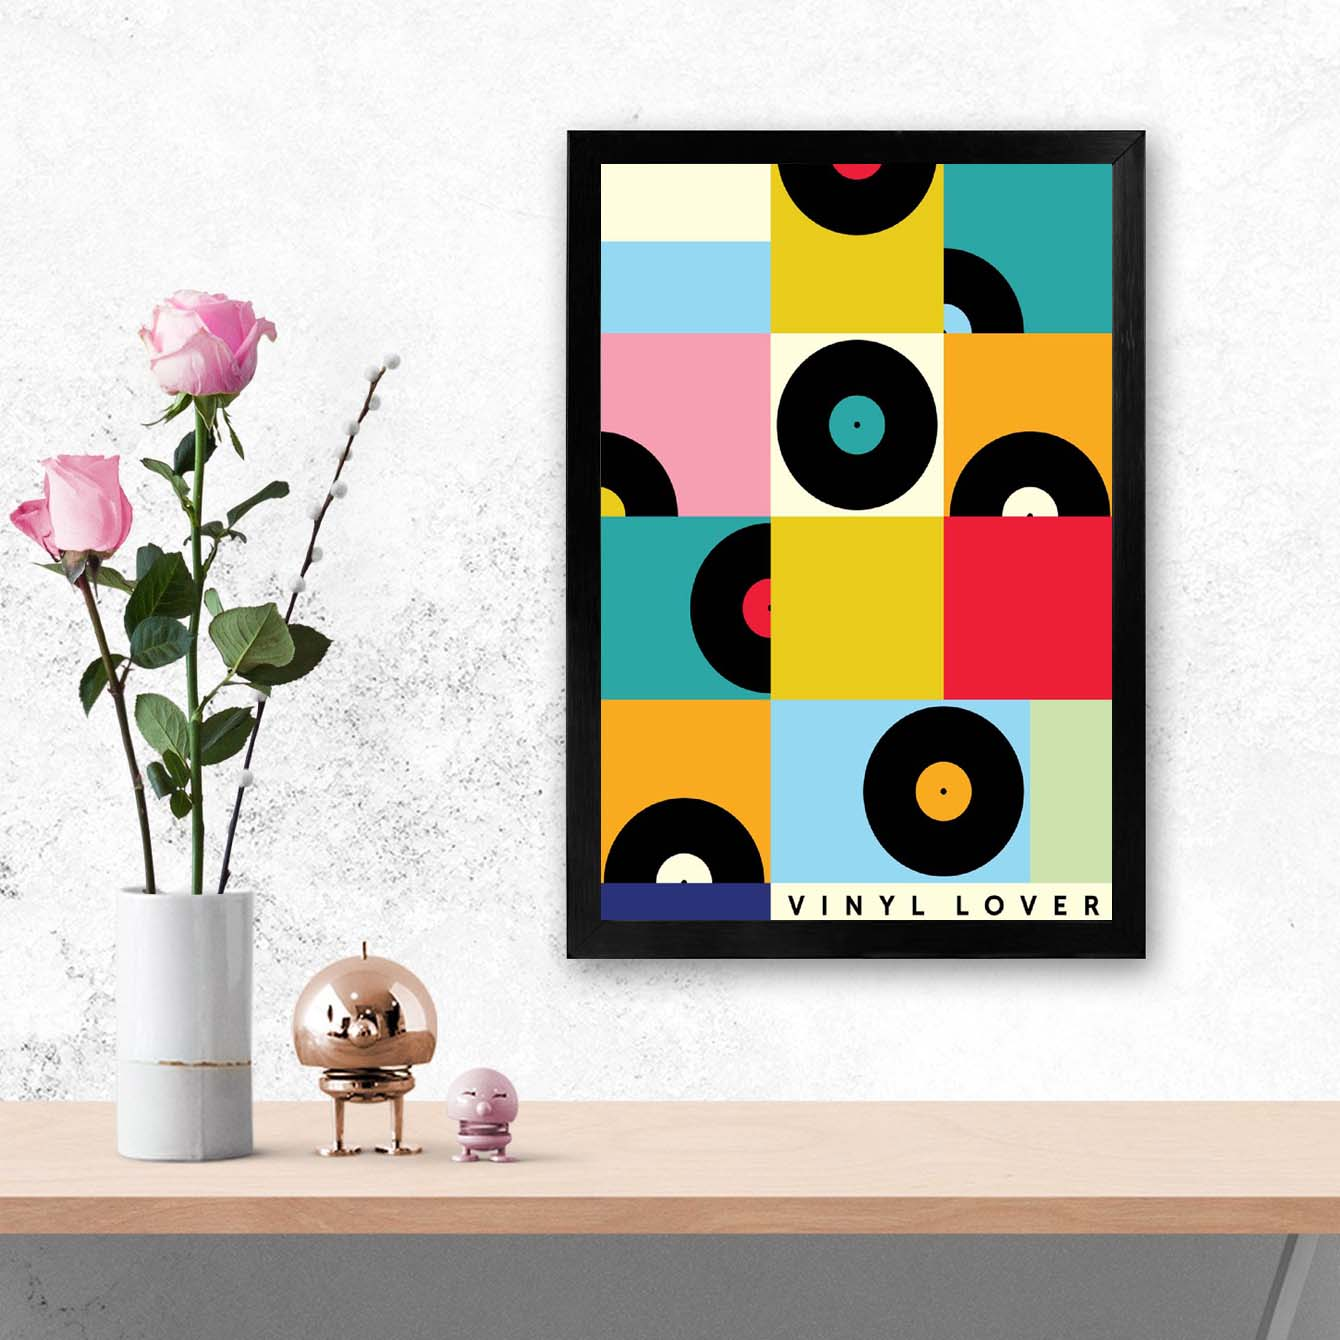 Pop Music Pop Art Glass Framed Posters & Artprints